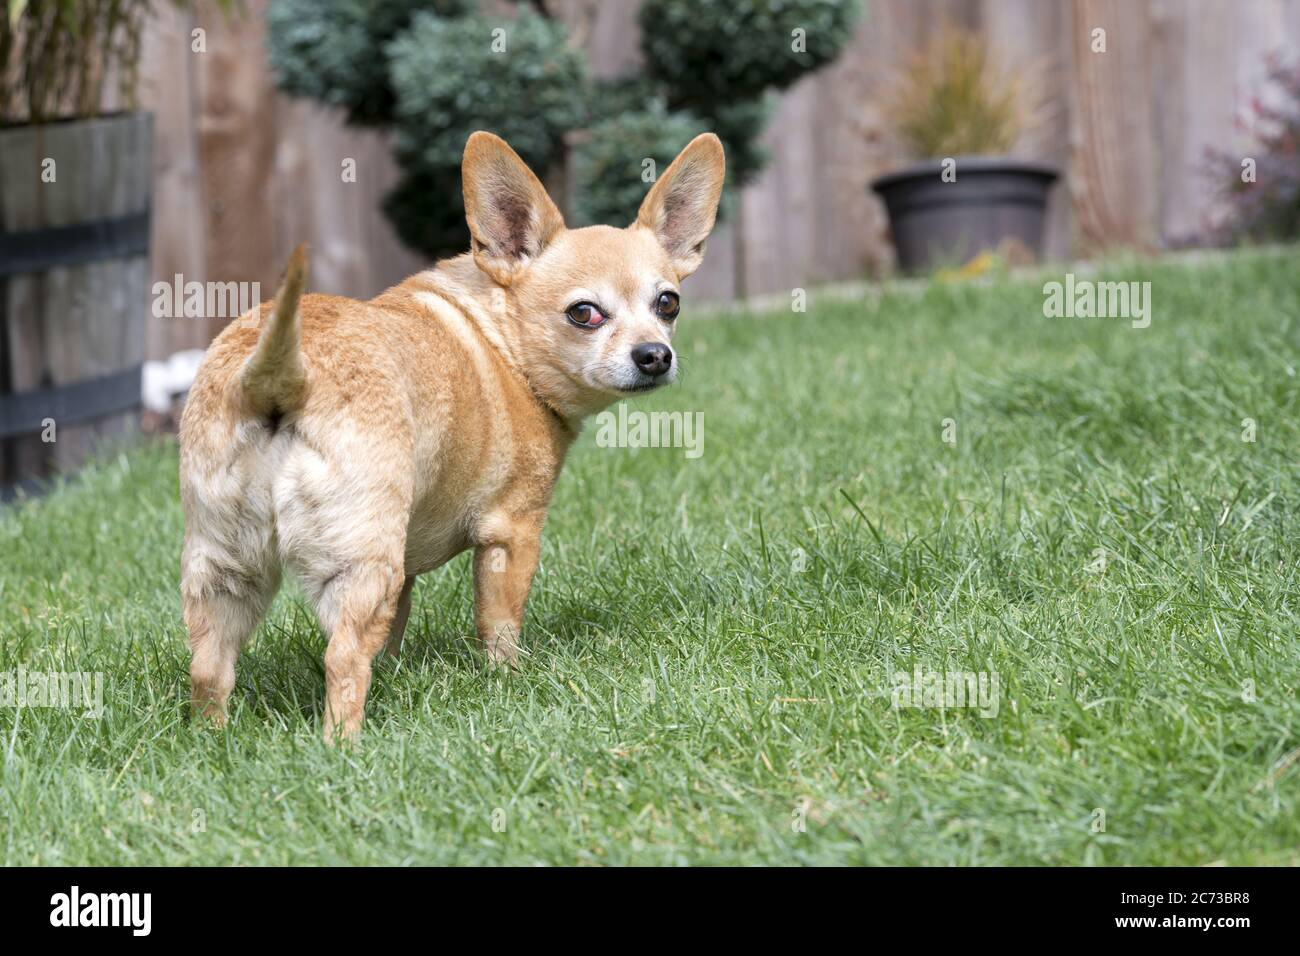 Chiweenie Dog Breed Standing in Yard - female with cherry eye medical condition Stock Photo